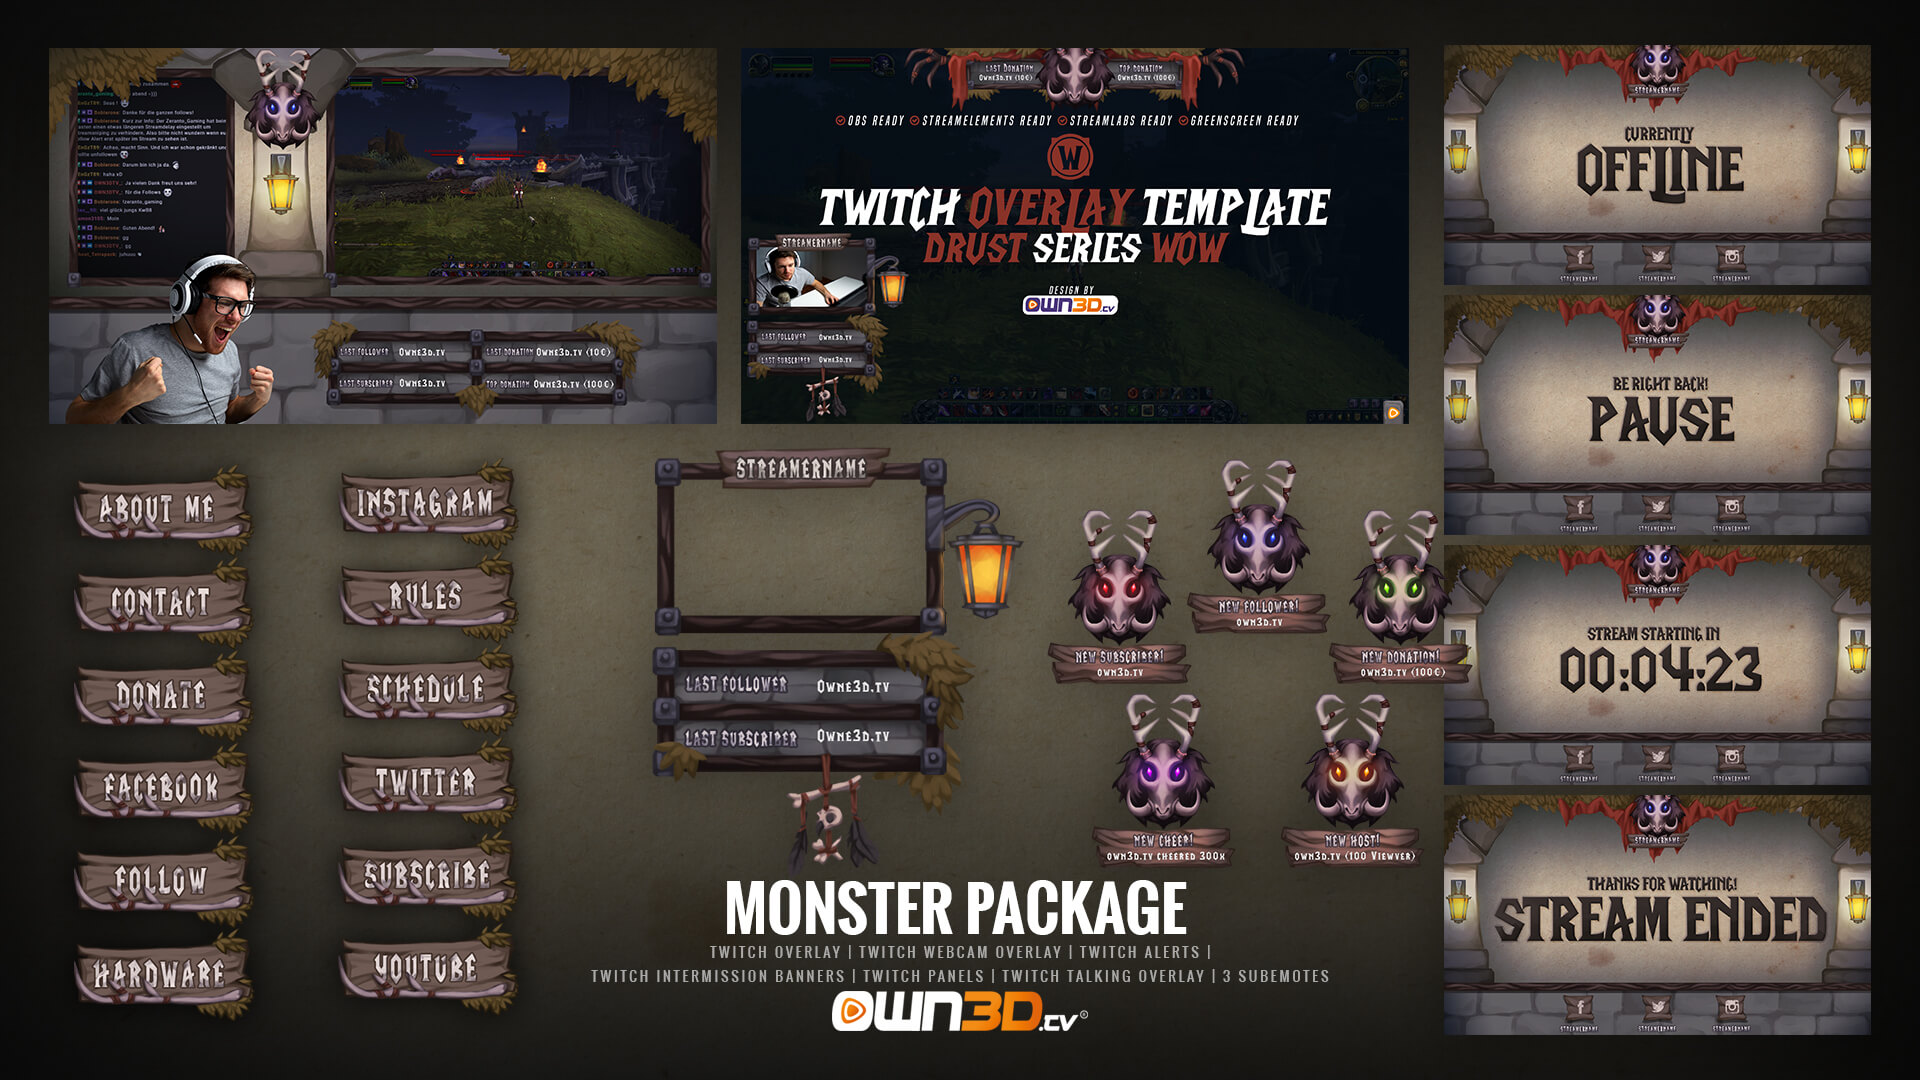 drust-series-wow-twitch-overlay-package-03-monster.jpg